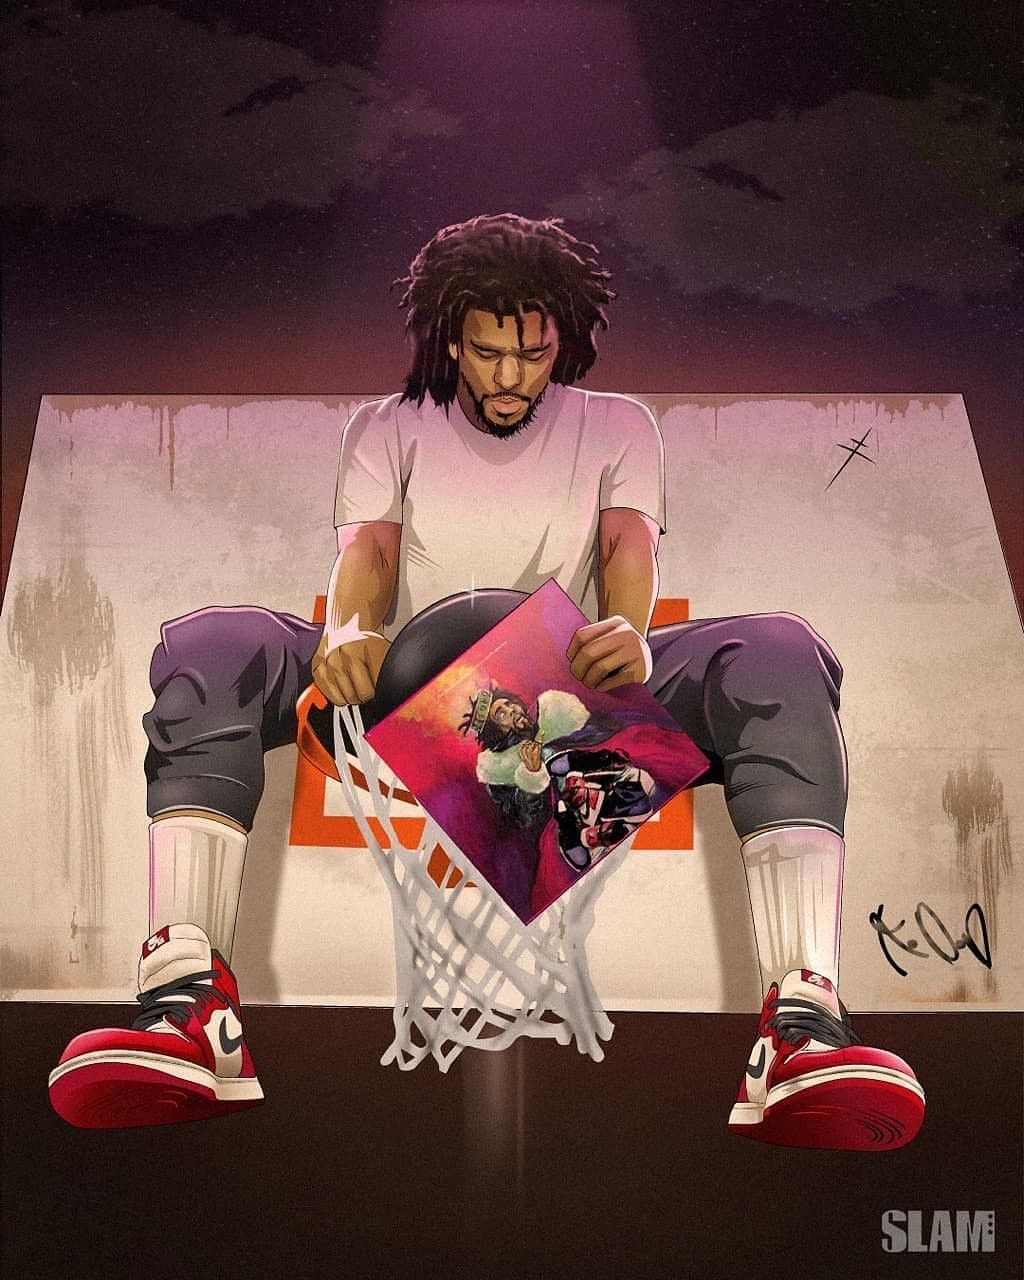 Jcole Kod 2018 J Cole Art J Cole Hip Hop Art